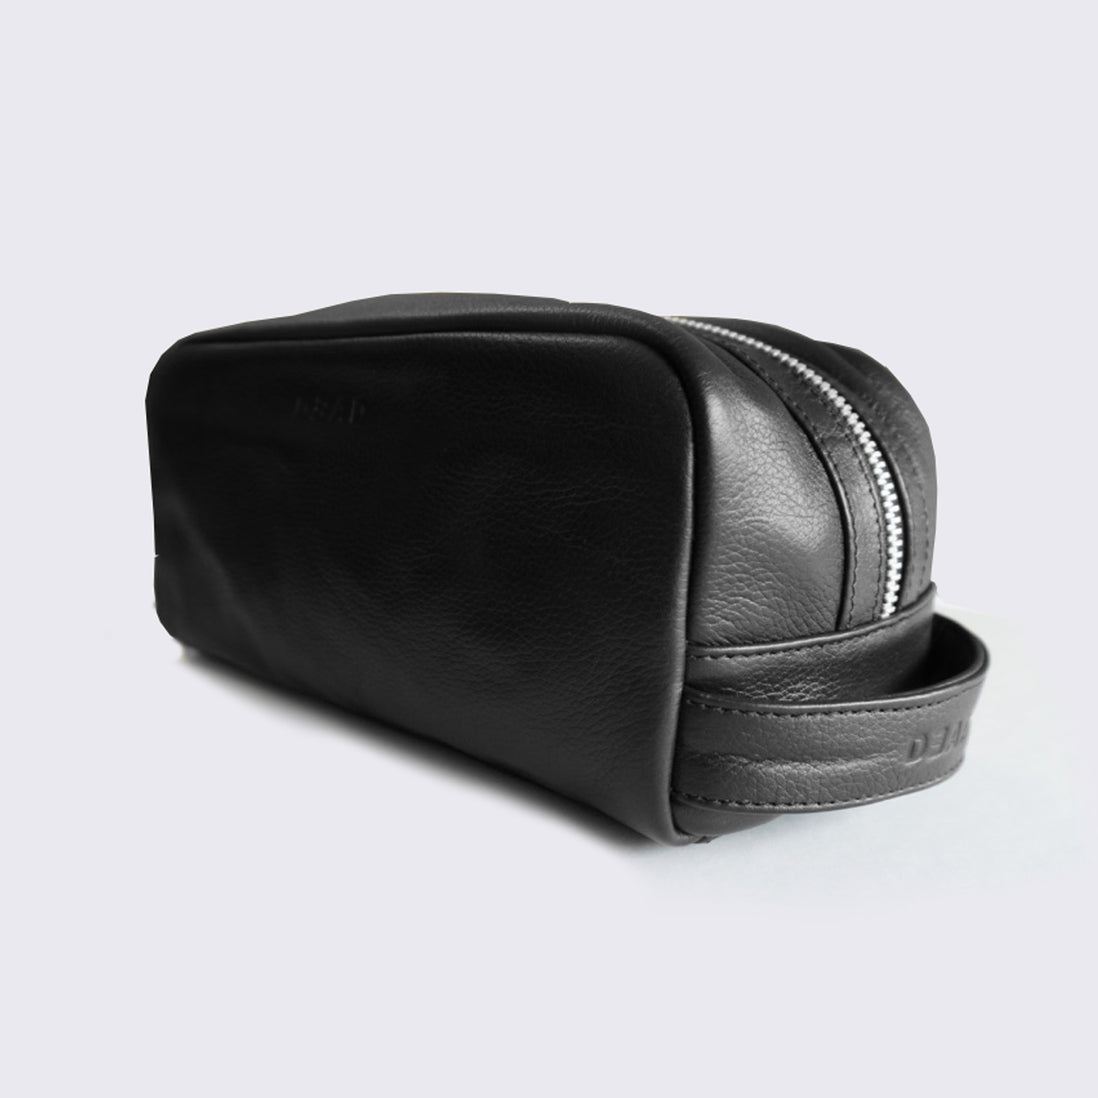 LEATHER WASH BAG